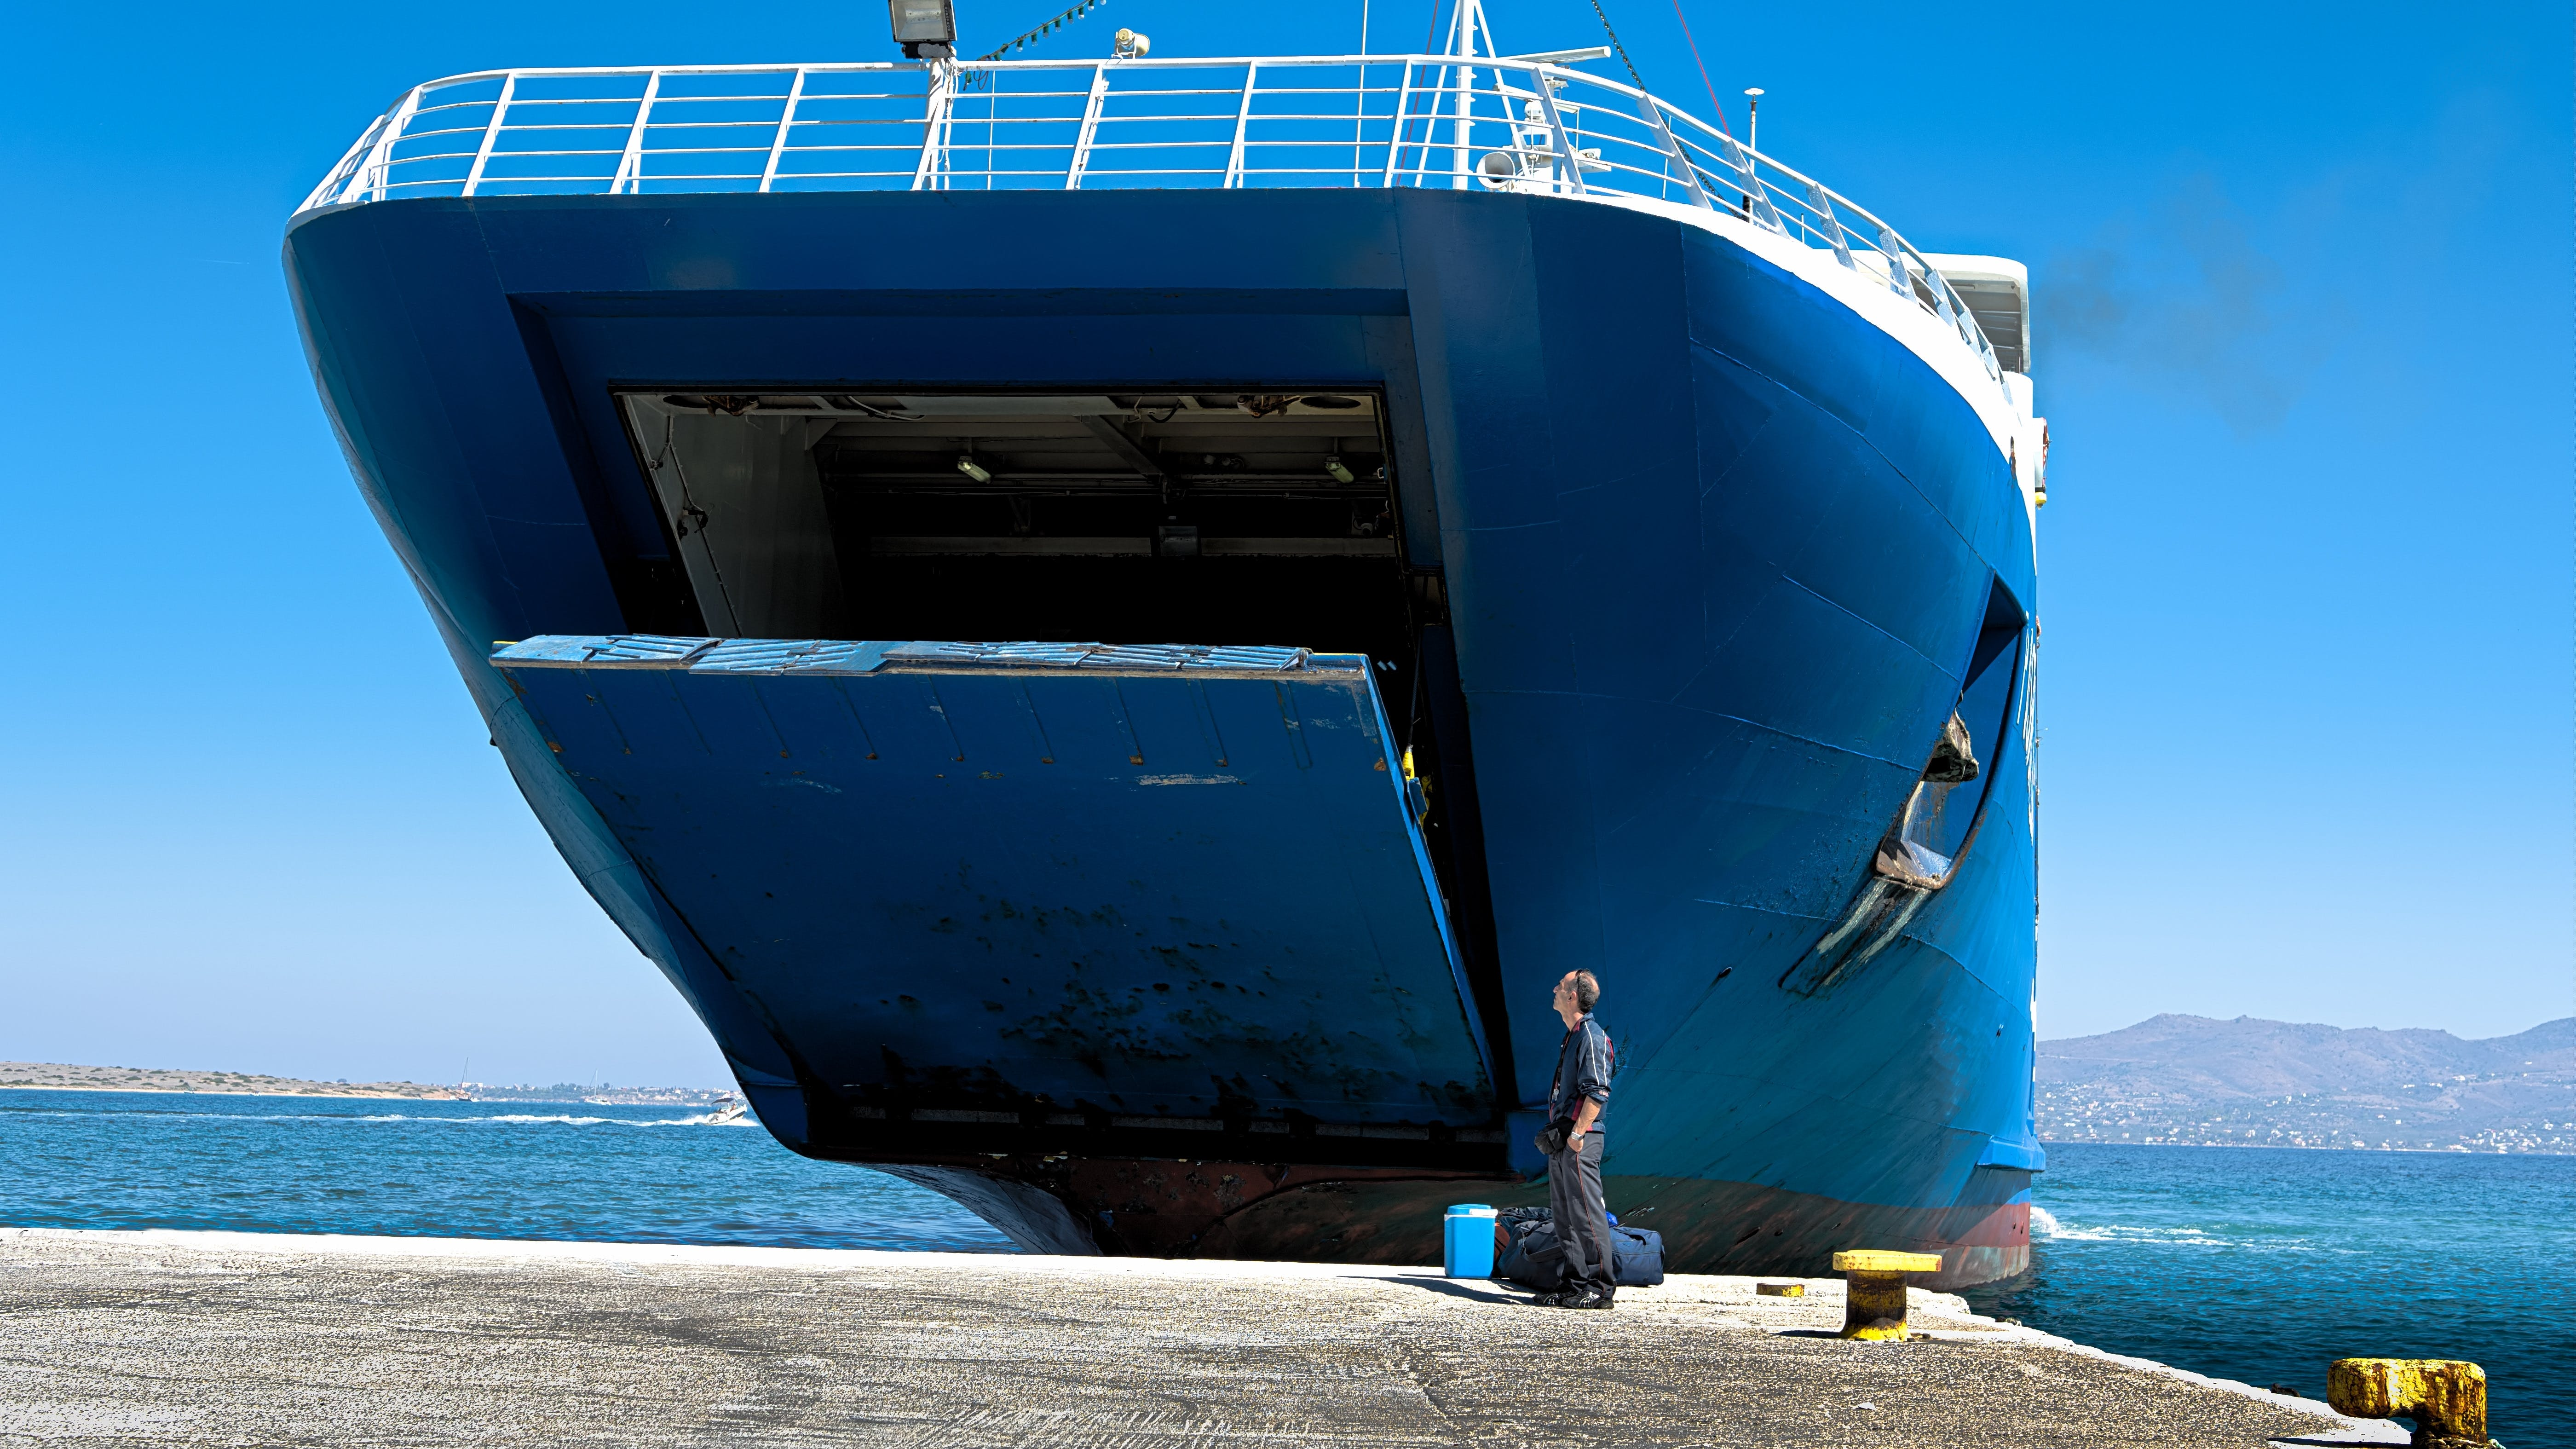 Free stock photo of abandoned, blue, boat, by the sea